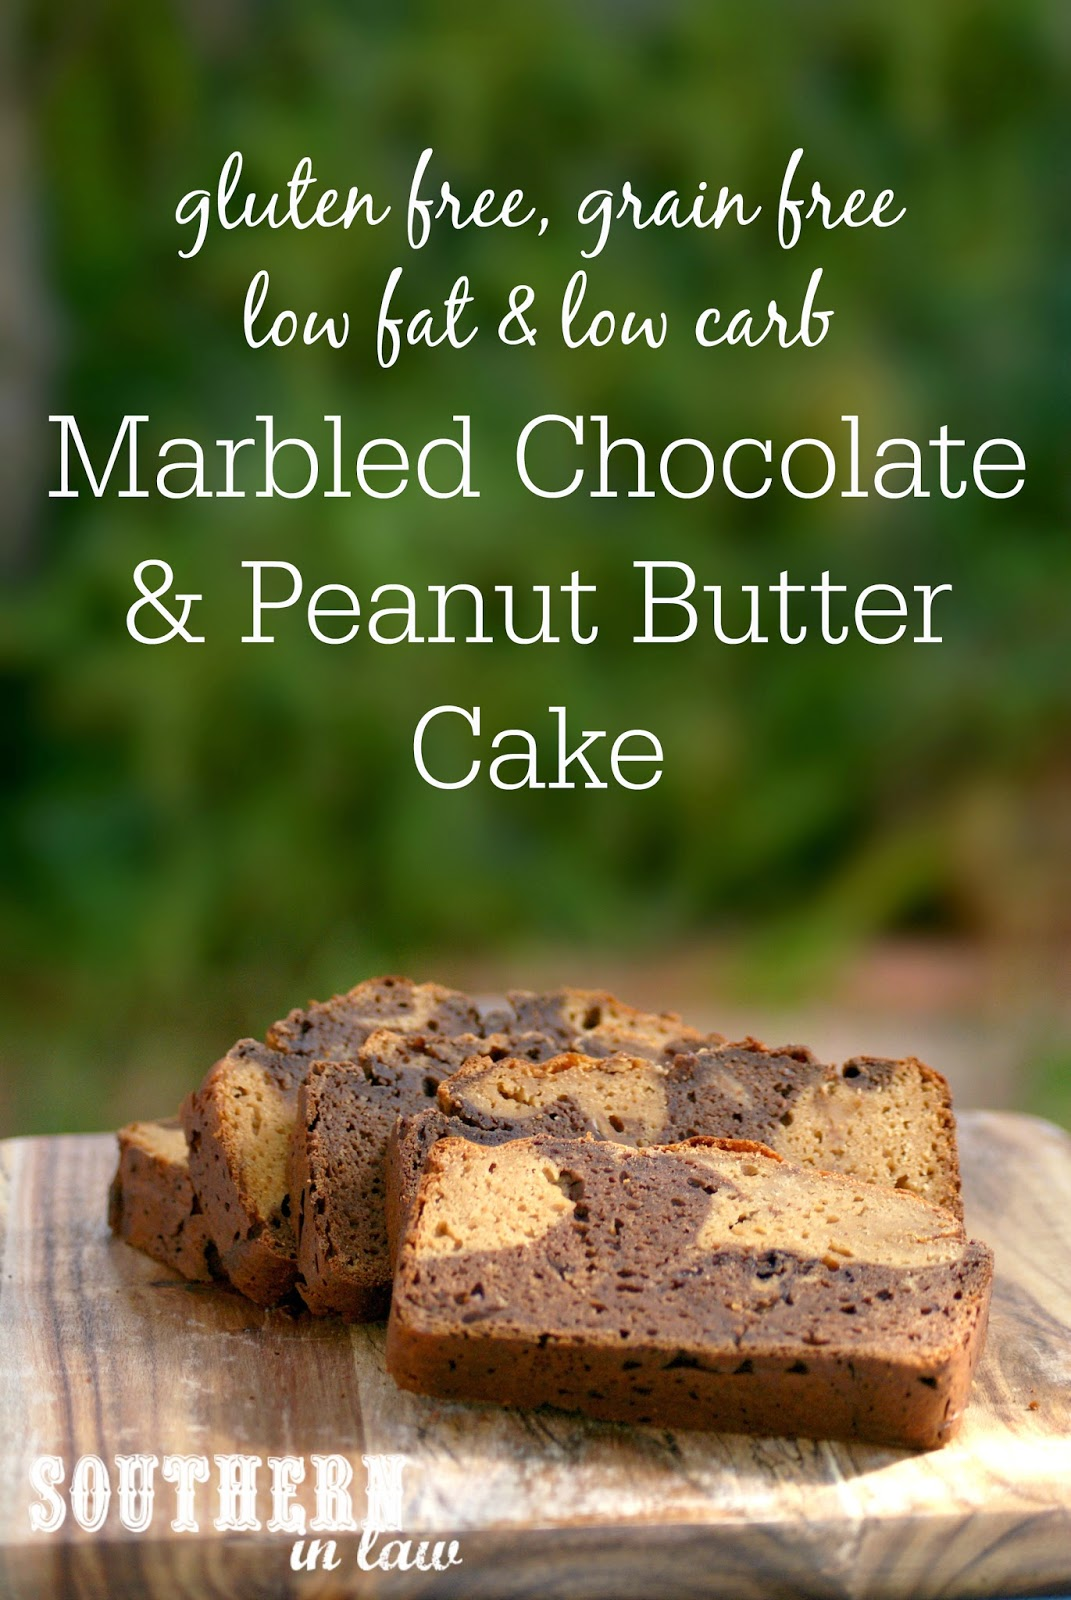 Healthy, High Protein Marbled Chocolate and Peanut Butter Cake - low fat, gluten free, low carb, high protein, grain free, refined sugar free